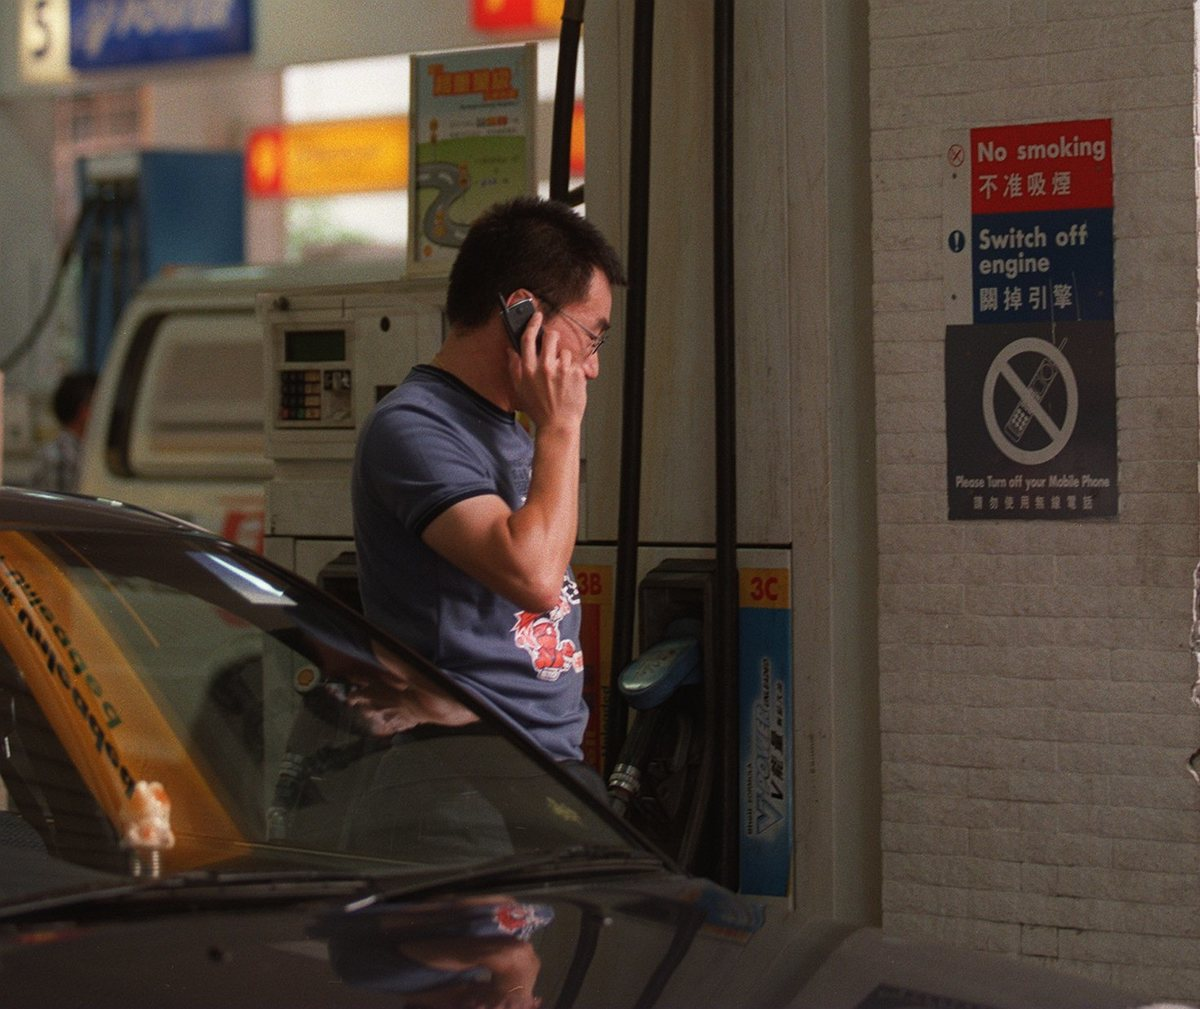 Man on the phone at a gas station